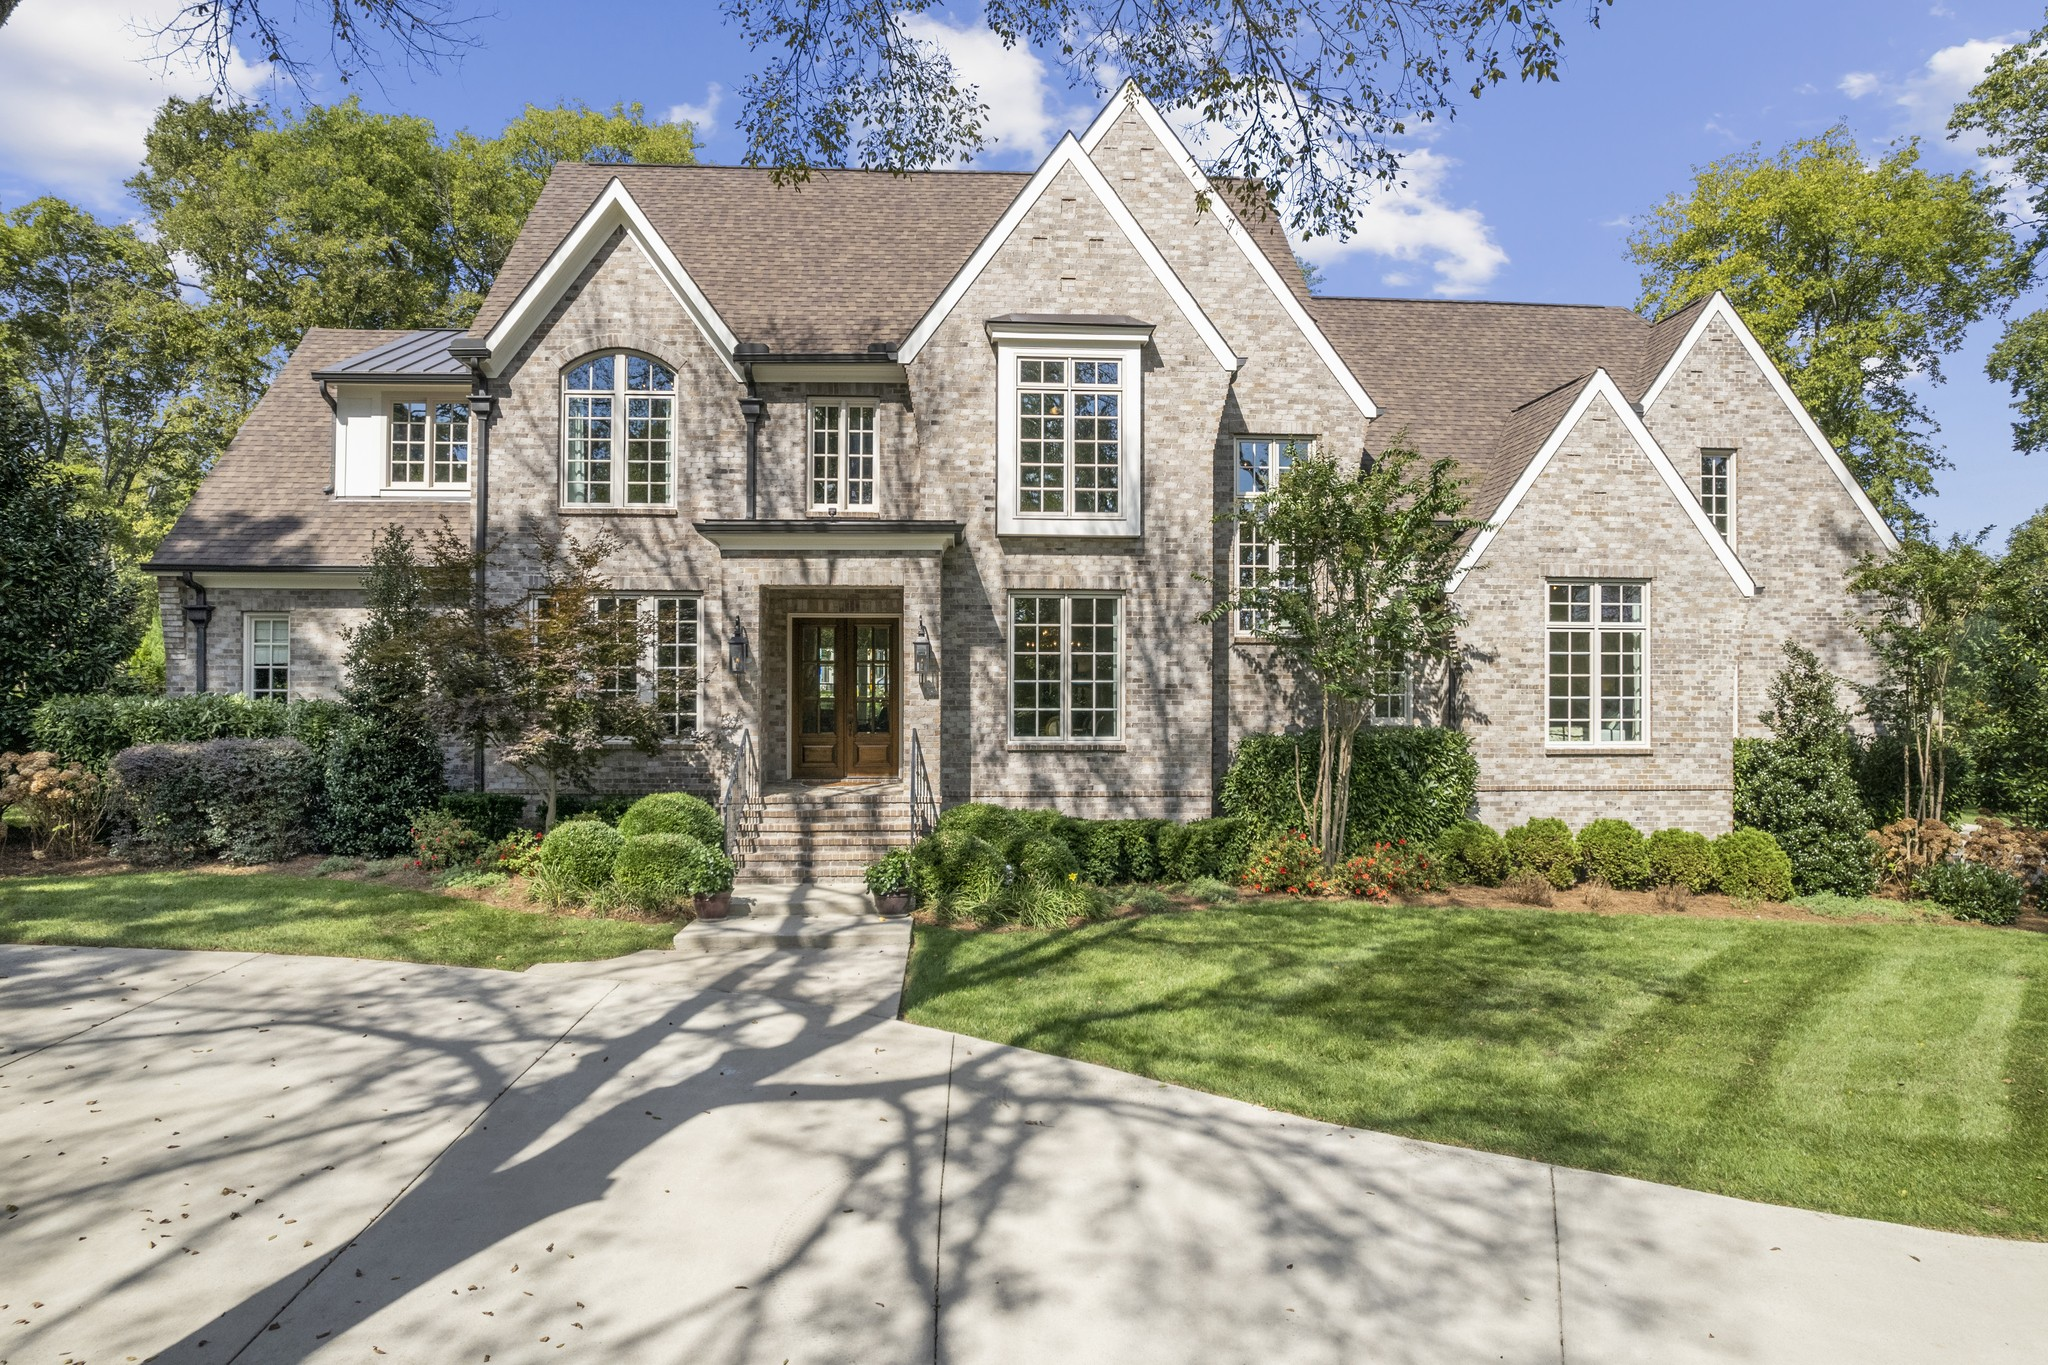 Exquisite Oak Hill Home. 1+ acres-Gorgeous Lot w/ Mature Trees. Hardwood Floors line the Main Level. 10' Ceilings. Chef's Kitchen: Gas Range, Double Ovens, Large Walk-in Pantry. Main Level Primary Bedroom Suite. Primary Bath w/ Htd Flrs, Soaking Tub, Walk-in Shower, & His & Her Closets. Guest Suite on Main Level. Wet Bar. 3 Bedrooms up w/ En Suite Baths. Spacious Rec Room. Office Up. Covered Back Patio w/ FP & Grilling Station. 4-Car Garage + Plentiful Parking. Serenity in the Heart of the City